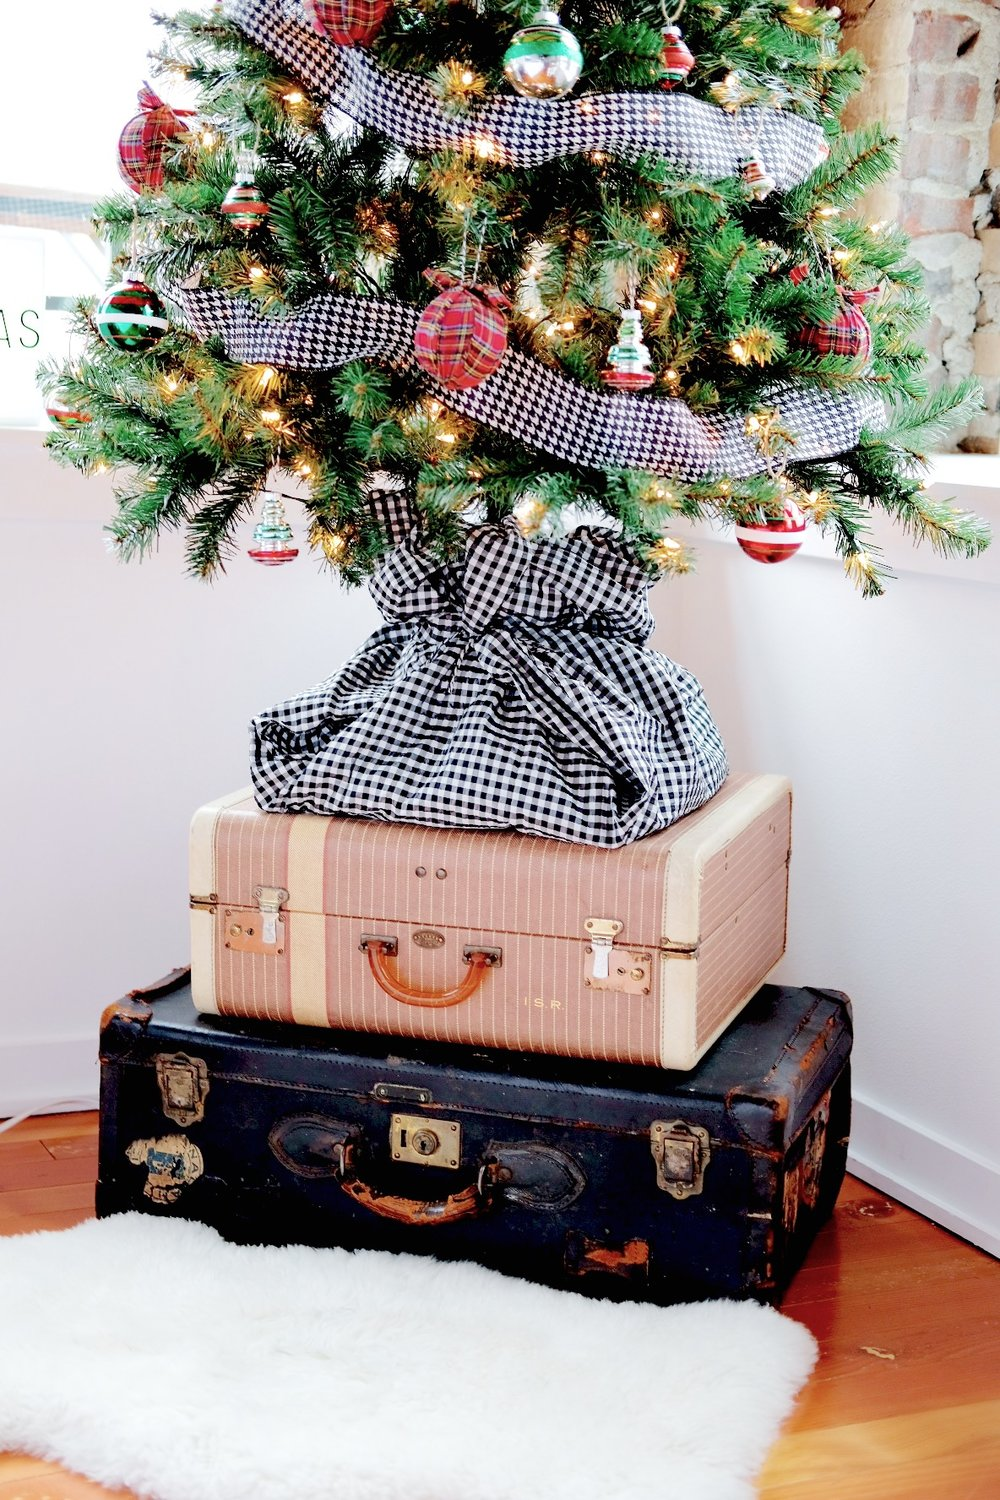 Plaid Christmas ornaments, Small Christmas Tree decorations, Dog Proof Christmas Tree, Christmas Tree on Vintage Suitcases, Fake Christmas Tree DIY Skirt, Vintage Ornaments, Christopher Radko Shiny Brite Ornaments.